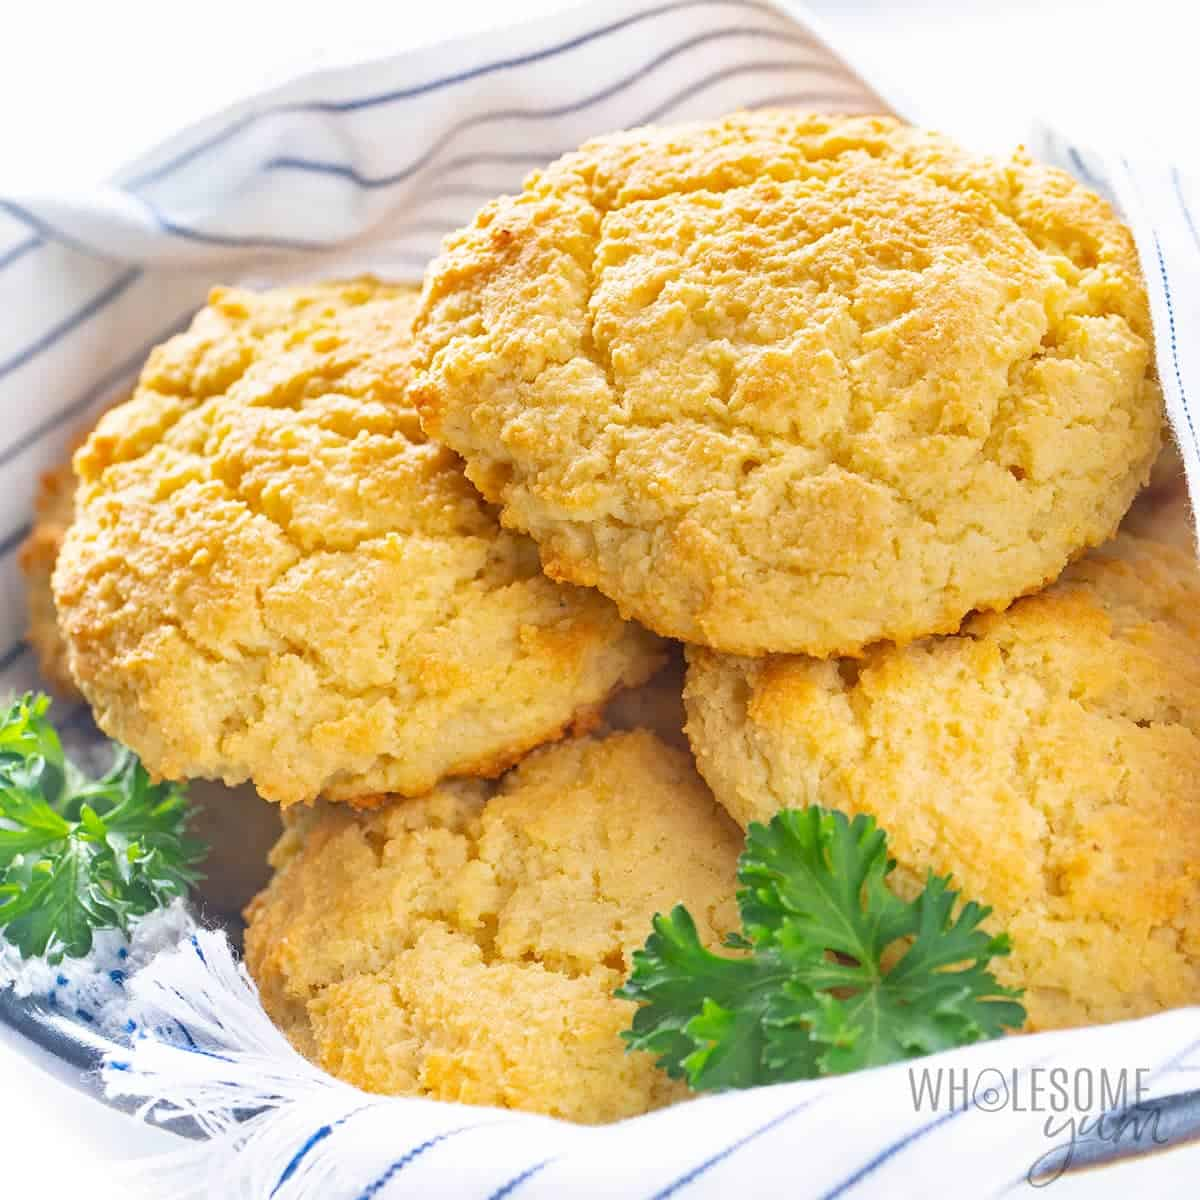 Keto almond flour biscuits in a bowl